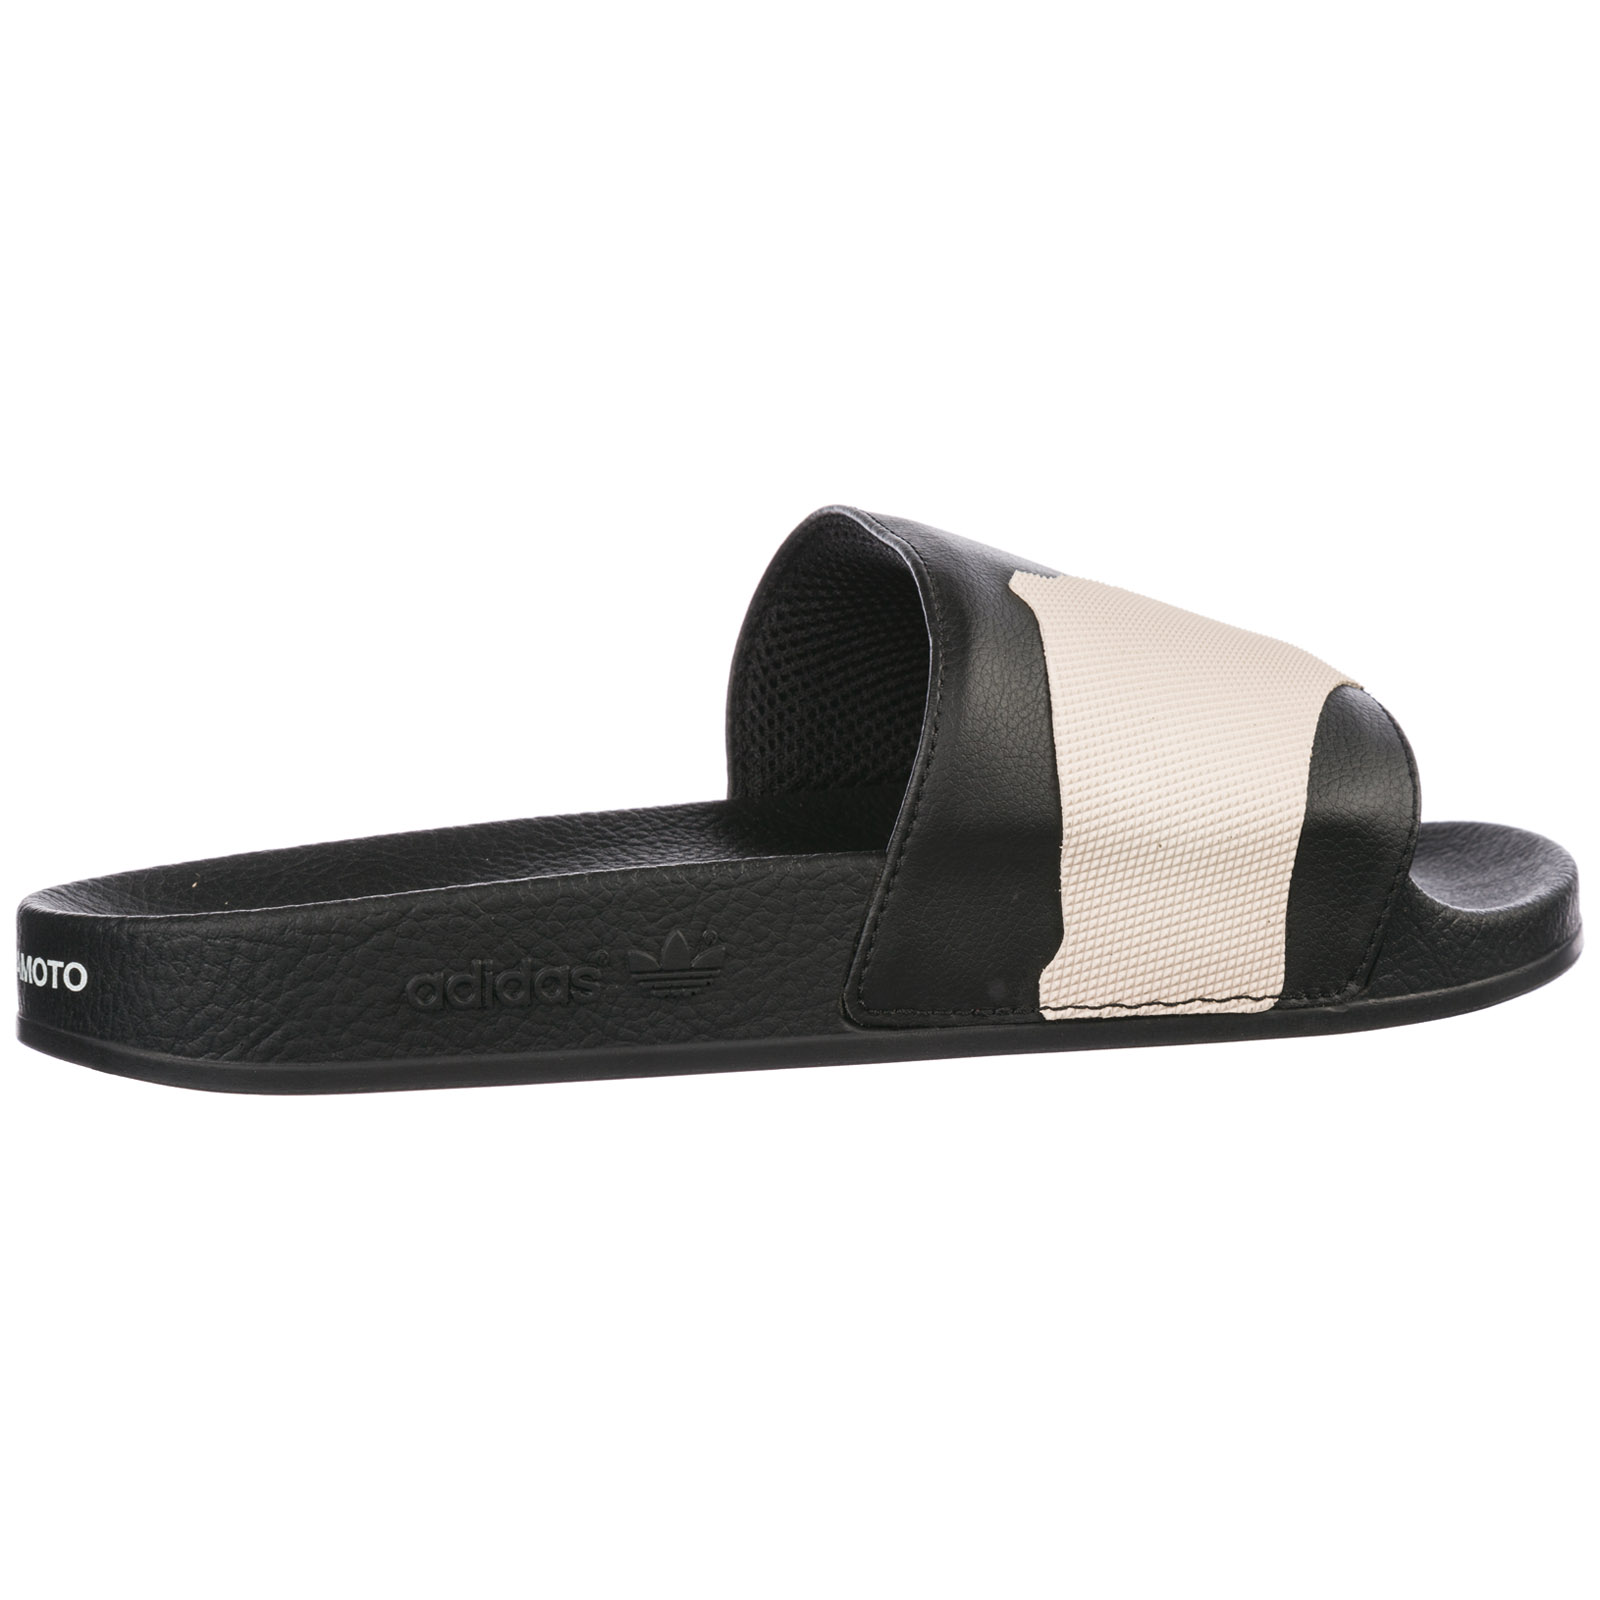 0ae7a5a96f68 Y-3 Men s slippers sandals rubber adilette